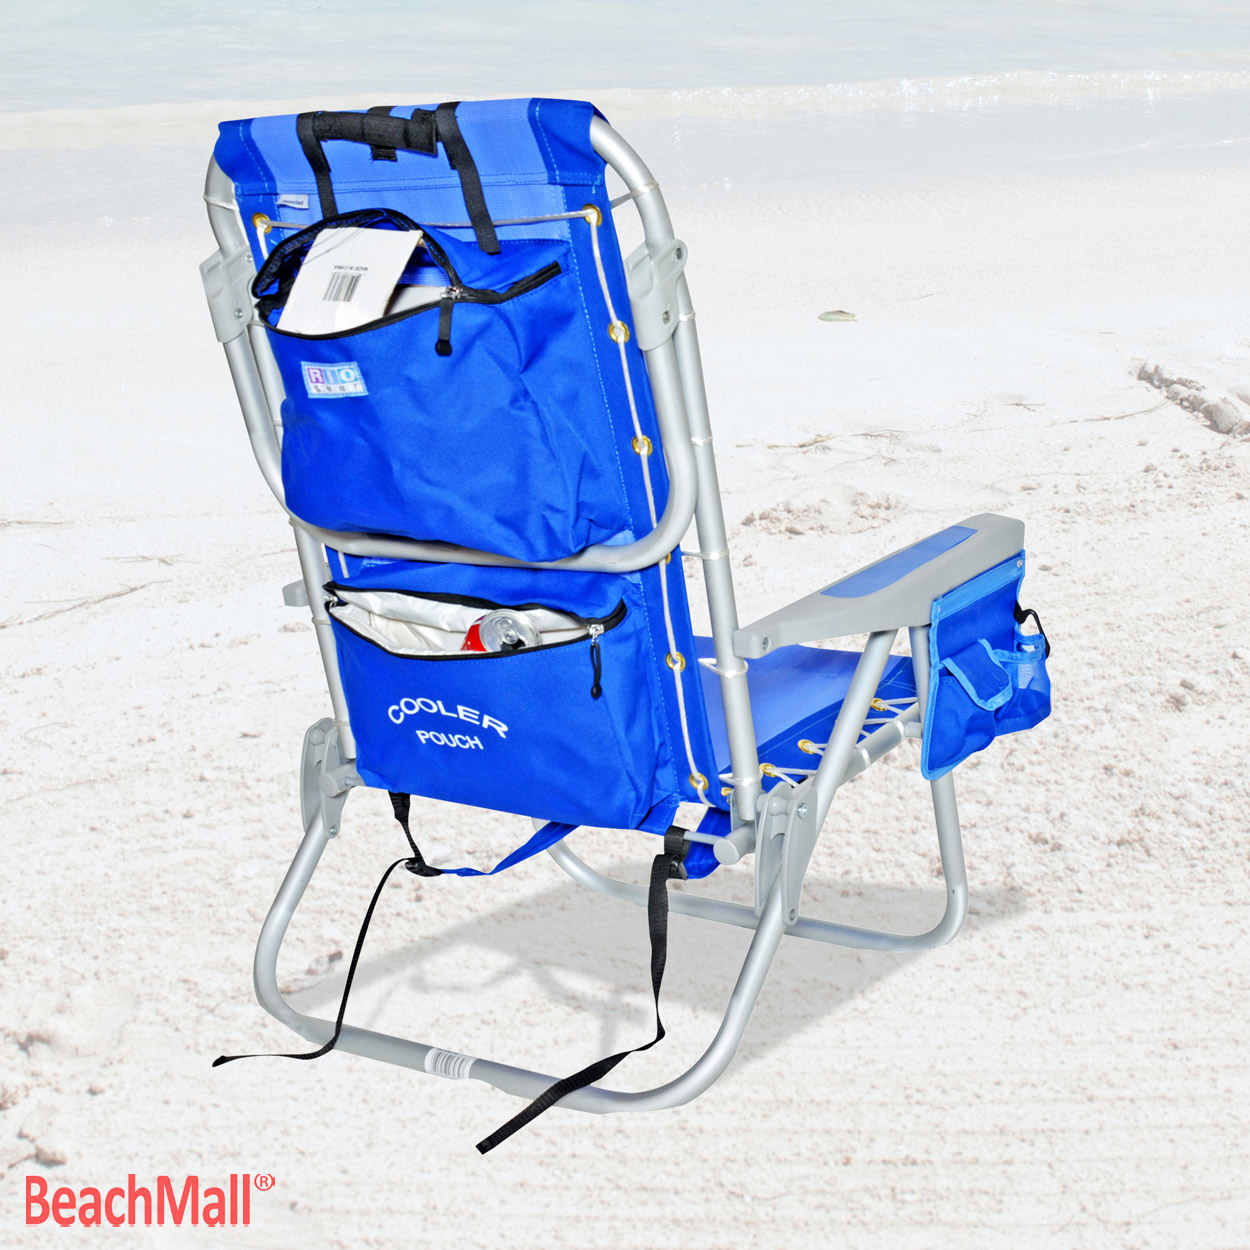 Beach Chair Backpack Rio 5 Pos Layflat Ultimate Backpack Beach Chair W Cooler